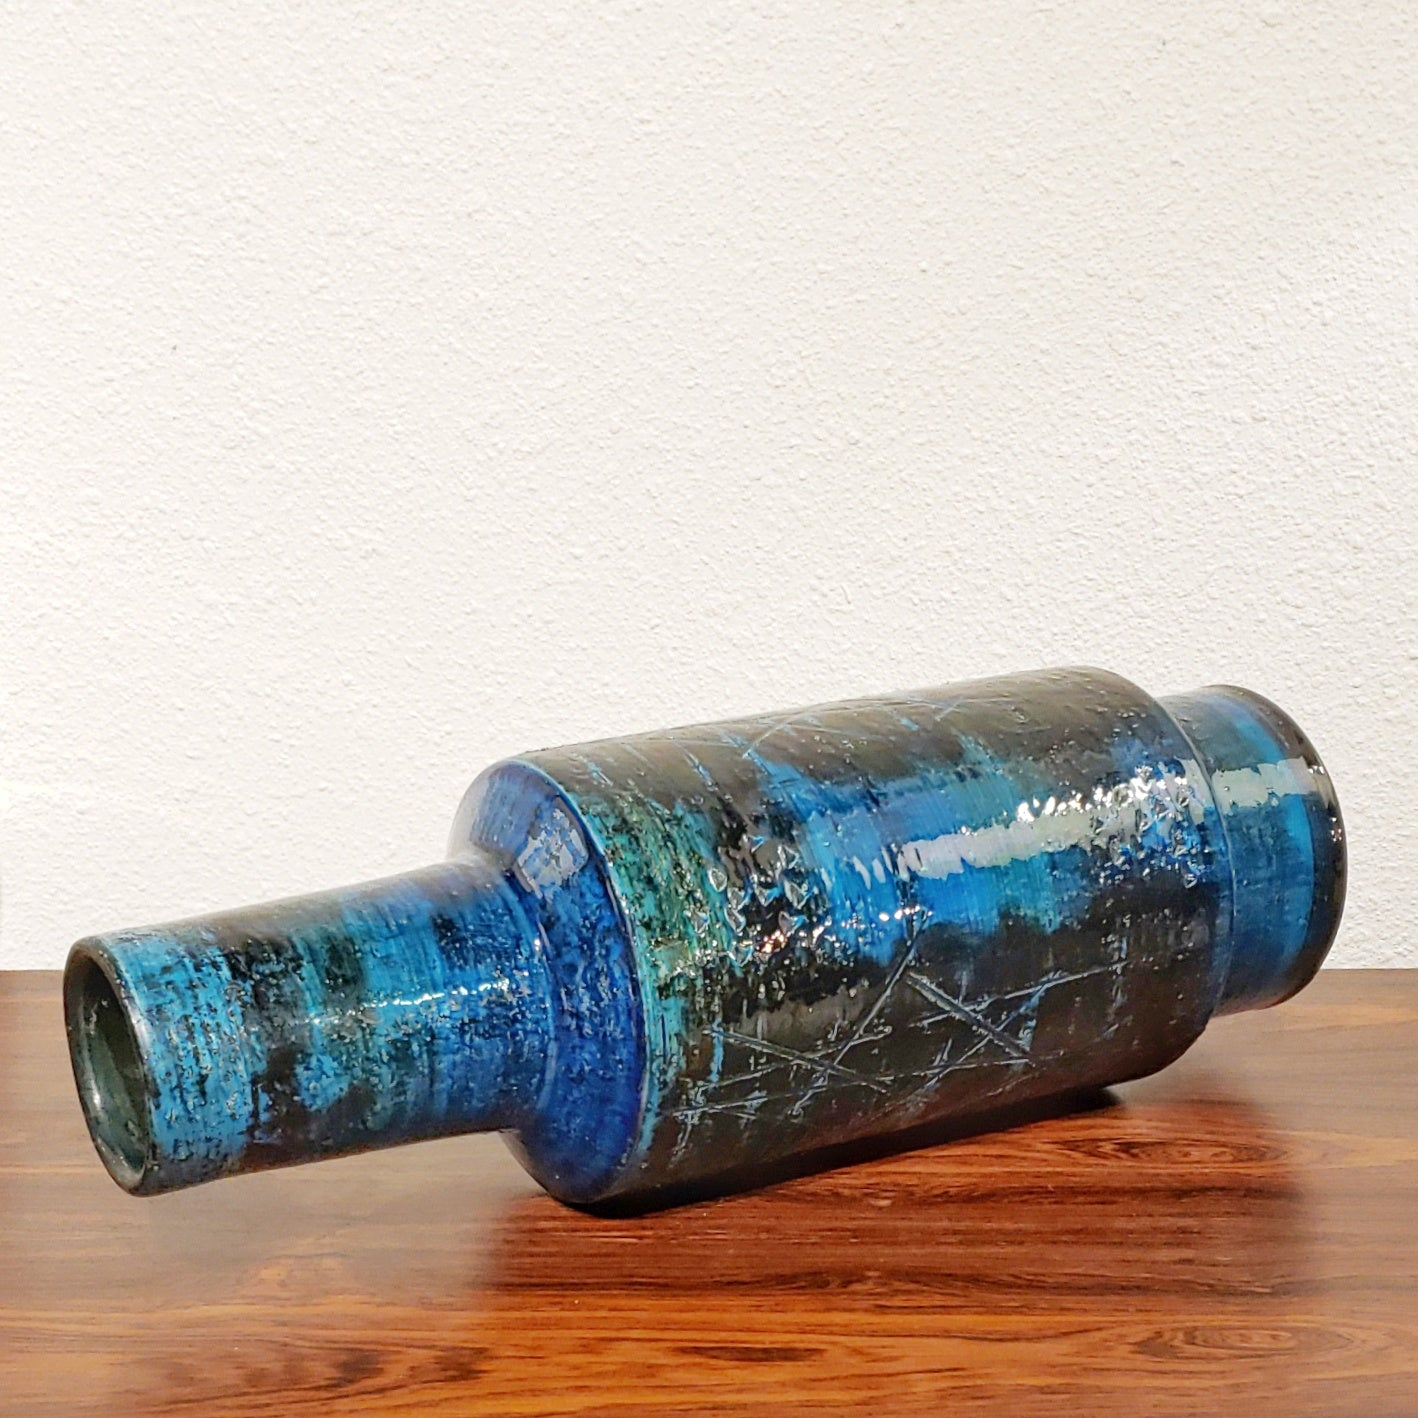 ALDO LONDI 'ABSTRACT' VASE FOR BITOSSI CERAMICHE (42 cm)